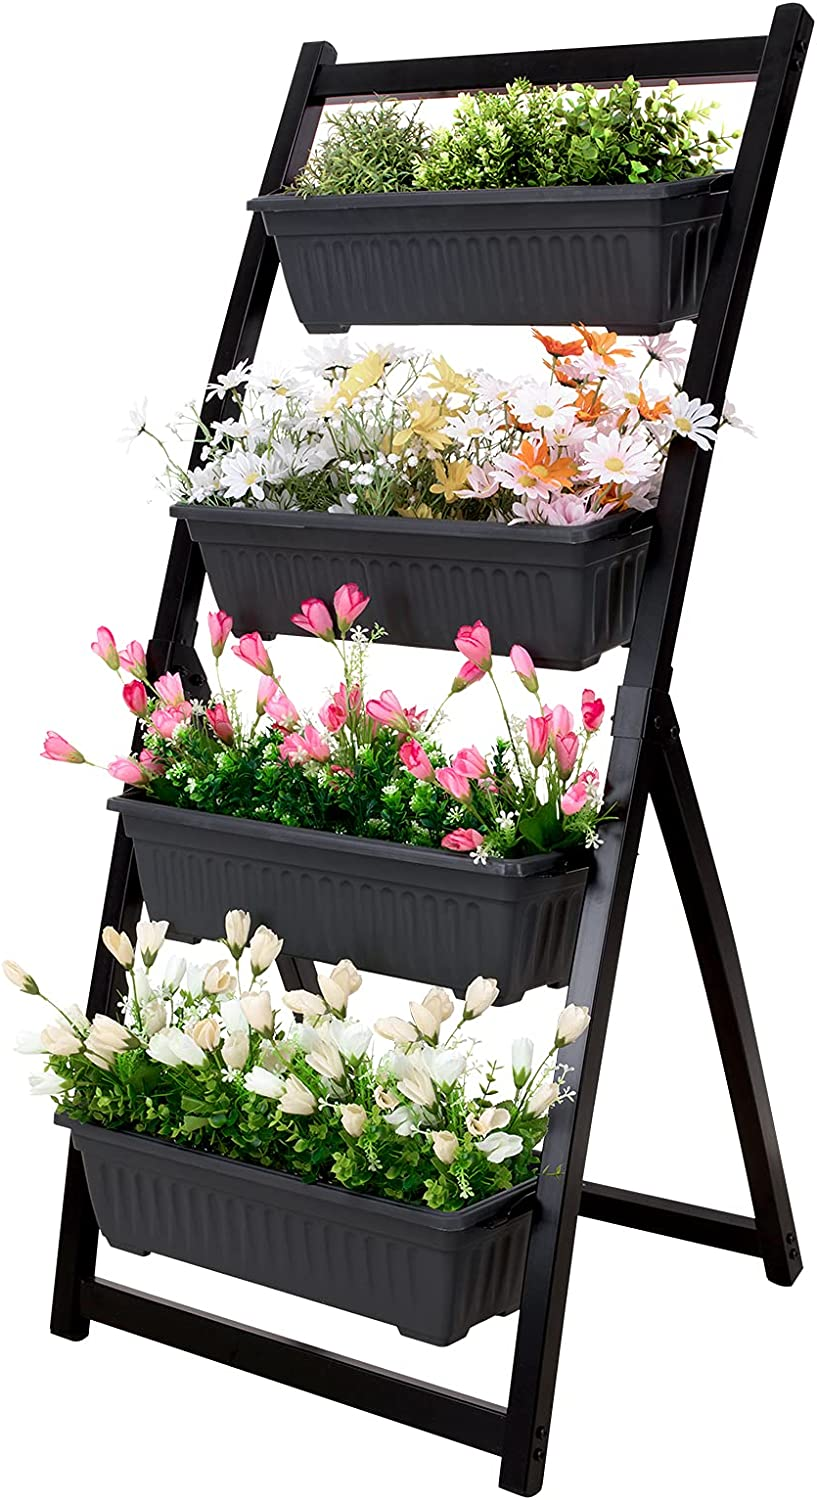 FXW Vertical Raised Garden Bed Metal, 4-feet/50-inches Four Tiered Planter Boxes with 4 Container Garden Boxes Kit for Flowers Vegetables Herbs Garden Patio Balcony Backyard Outdoor Indoor